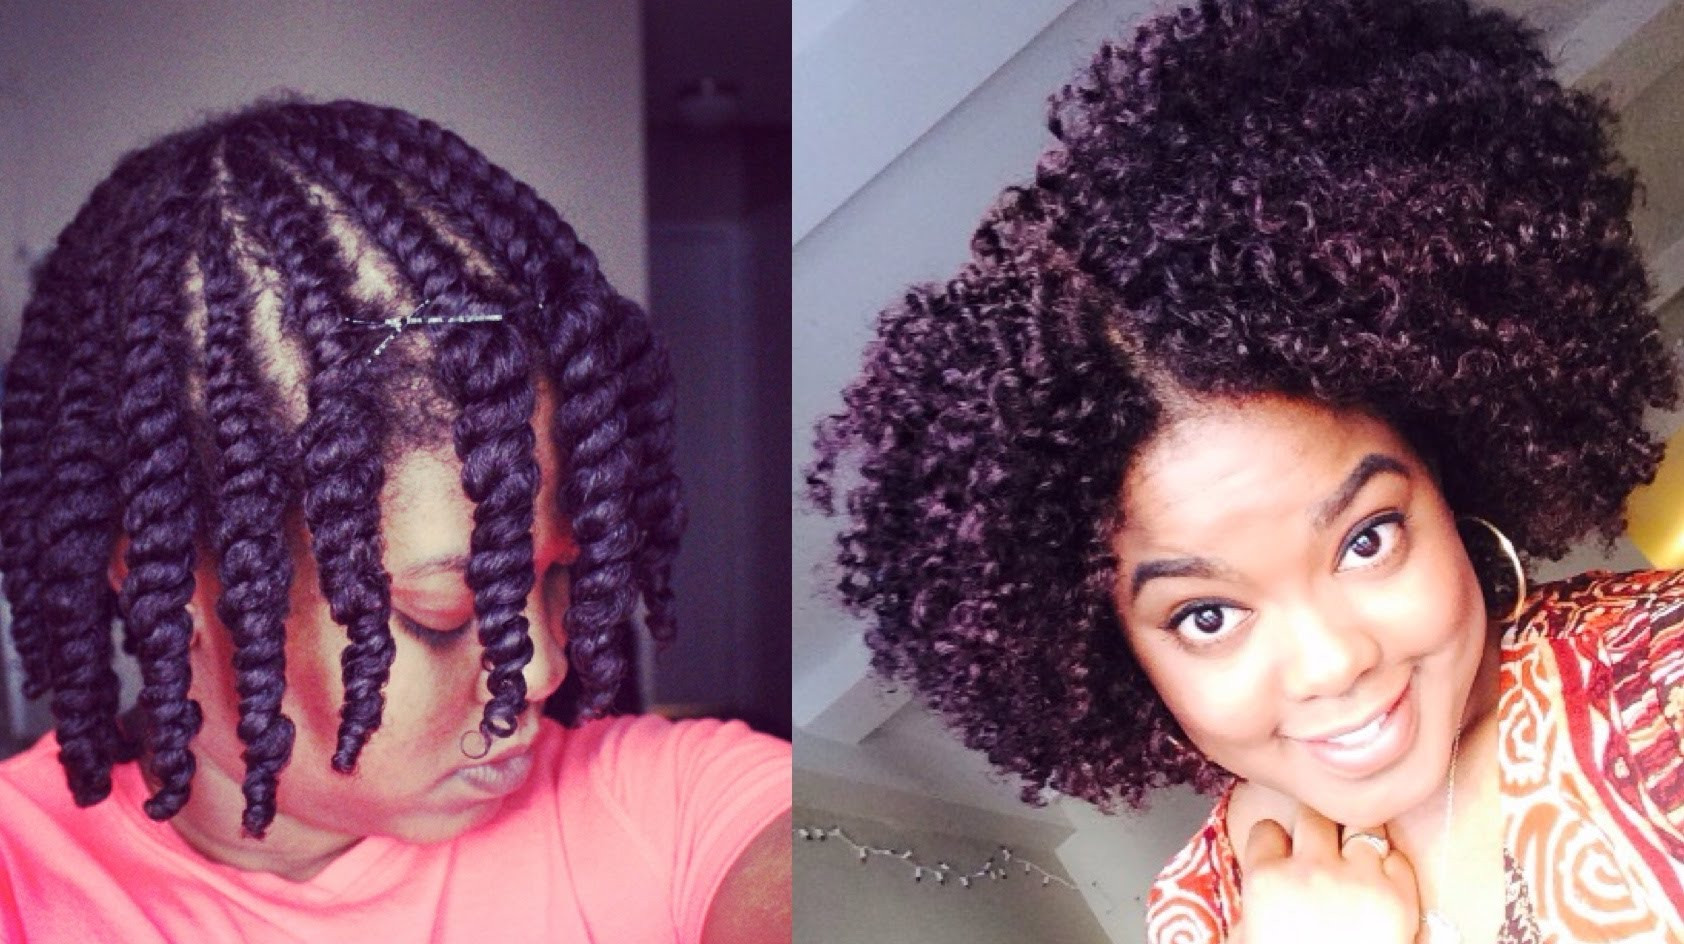 Best ideas about Flat Twist Hairstyles On Natural Hair . Save or Pin Defined Flat Twist Out Short Natural Hair Now.